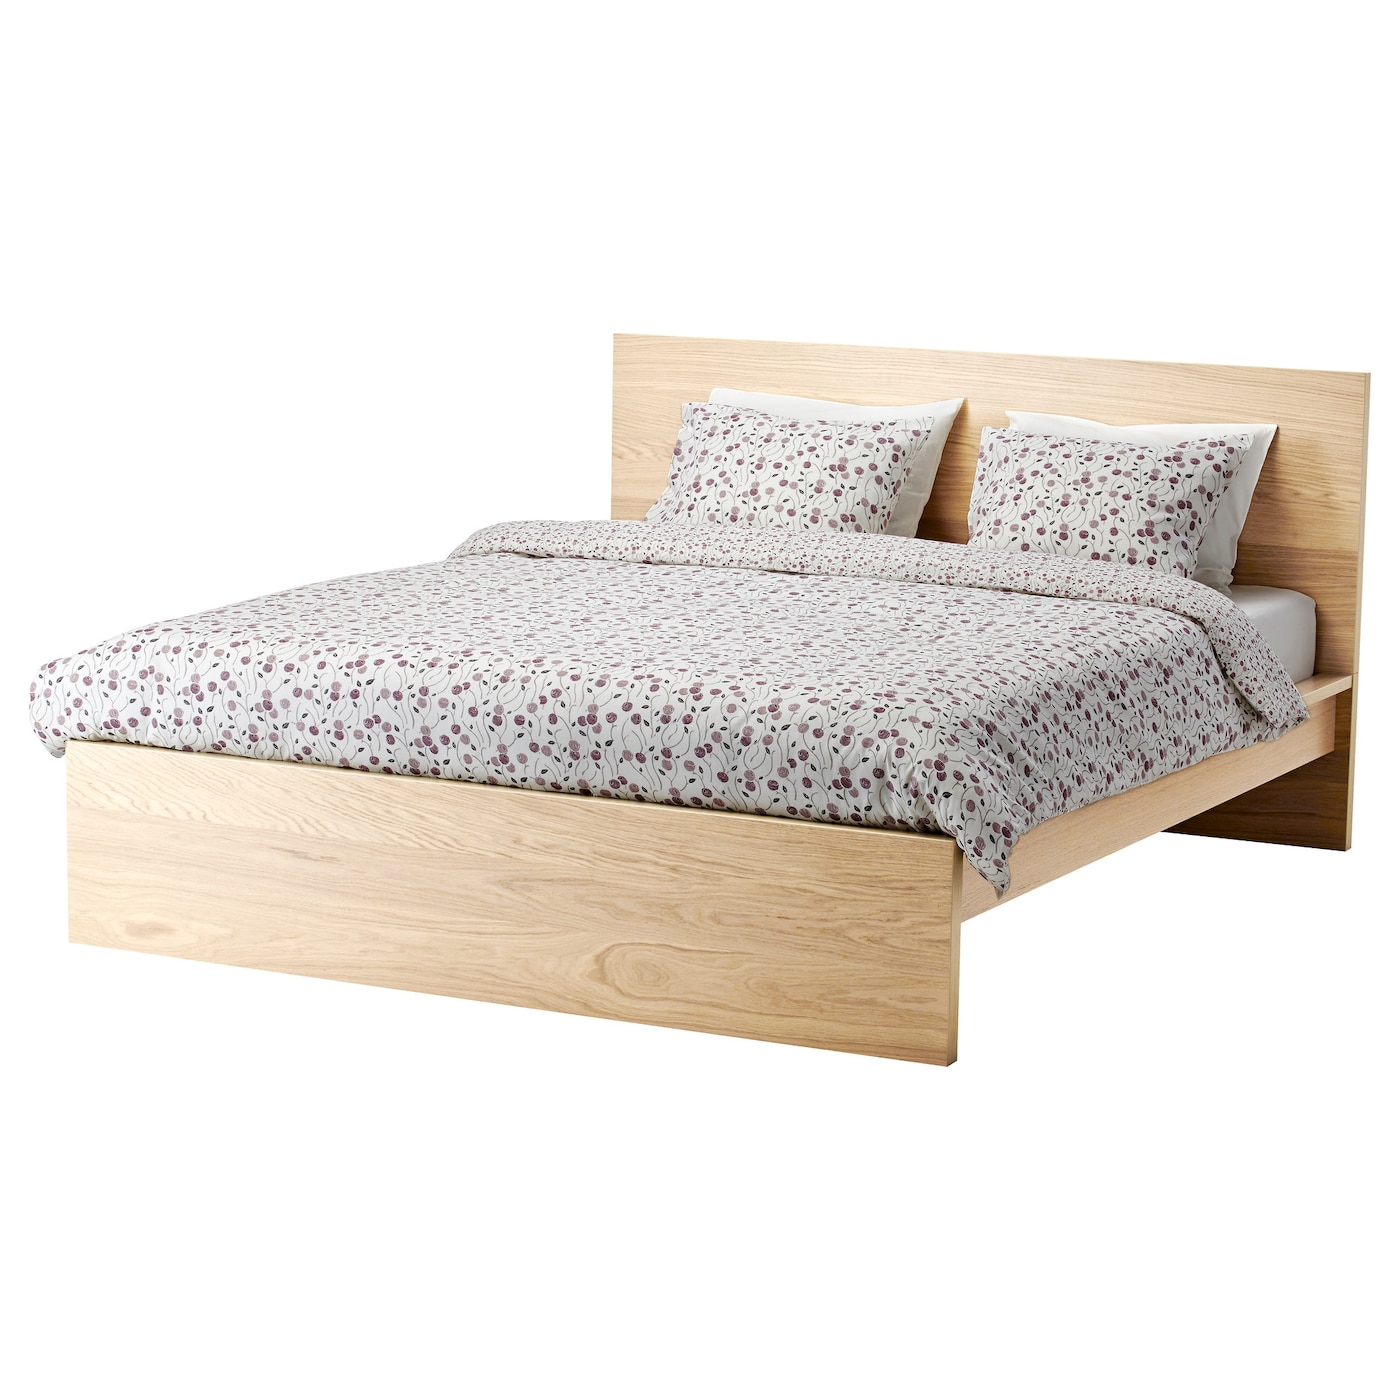 IKEA MALM bed frame, high Real wood veneer will make this bed age gracefully.